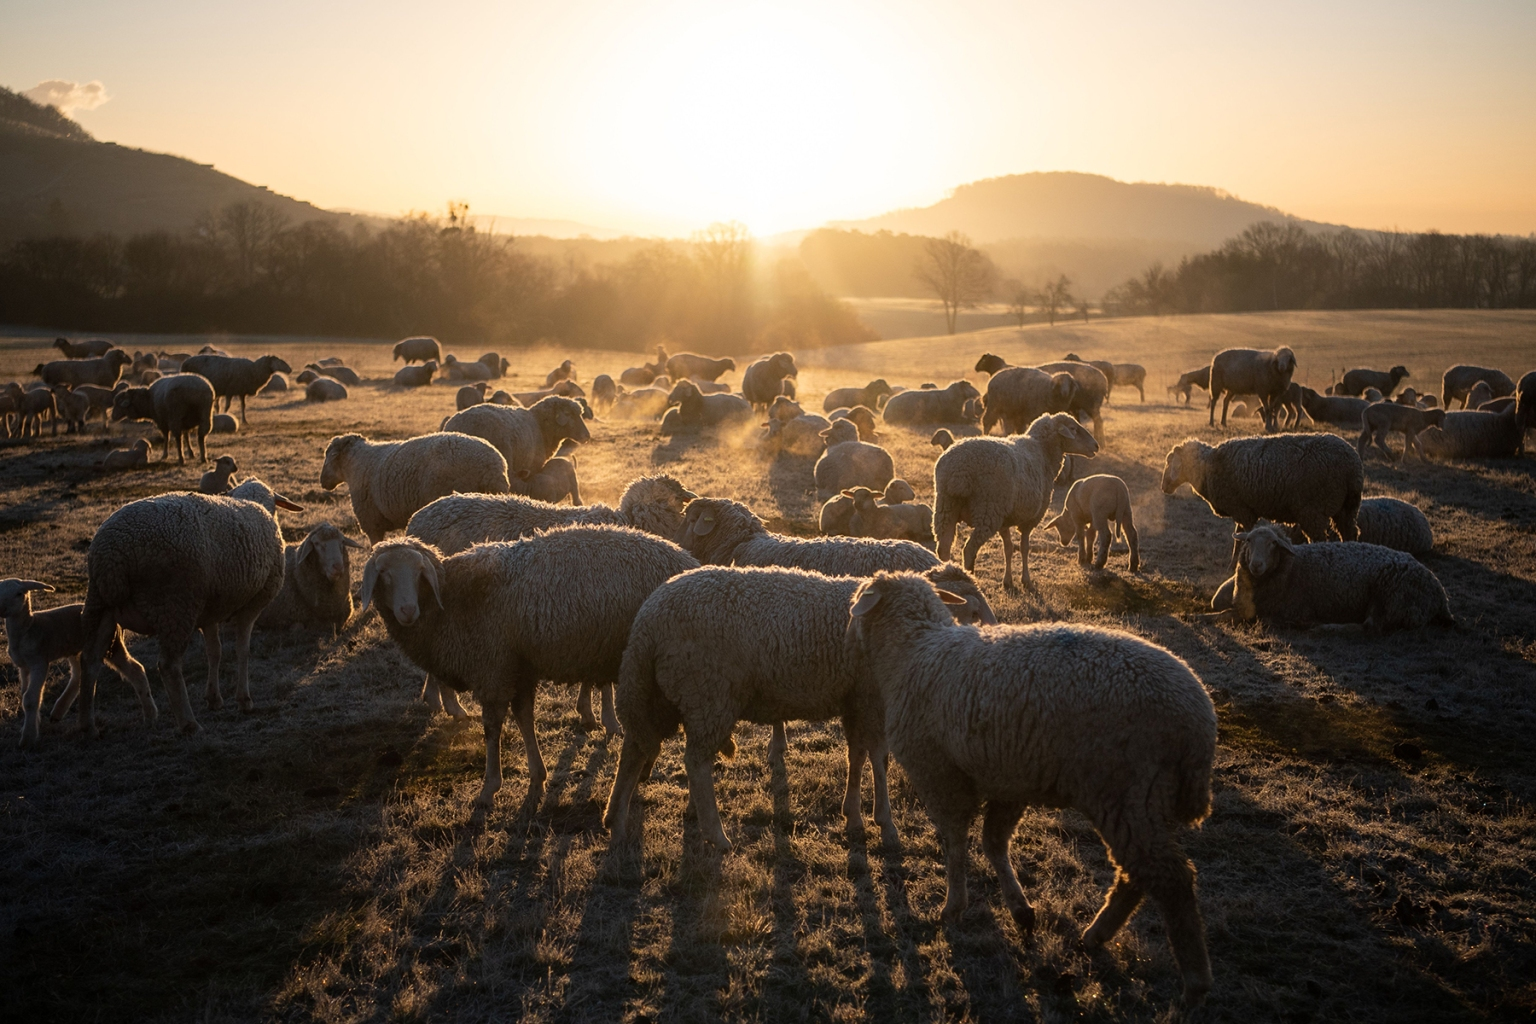 A flock of sheep stand on a meadow as sun rises in Maulbronn, southern Germany, on March 20. SEBASTIAN GOLLNOW/AFP/Getty Images